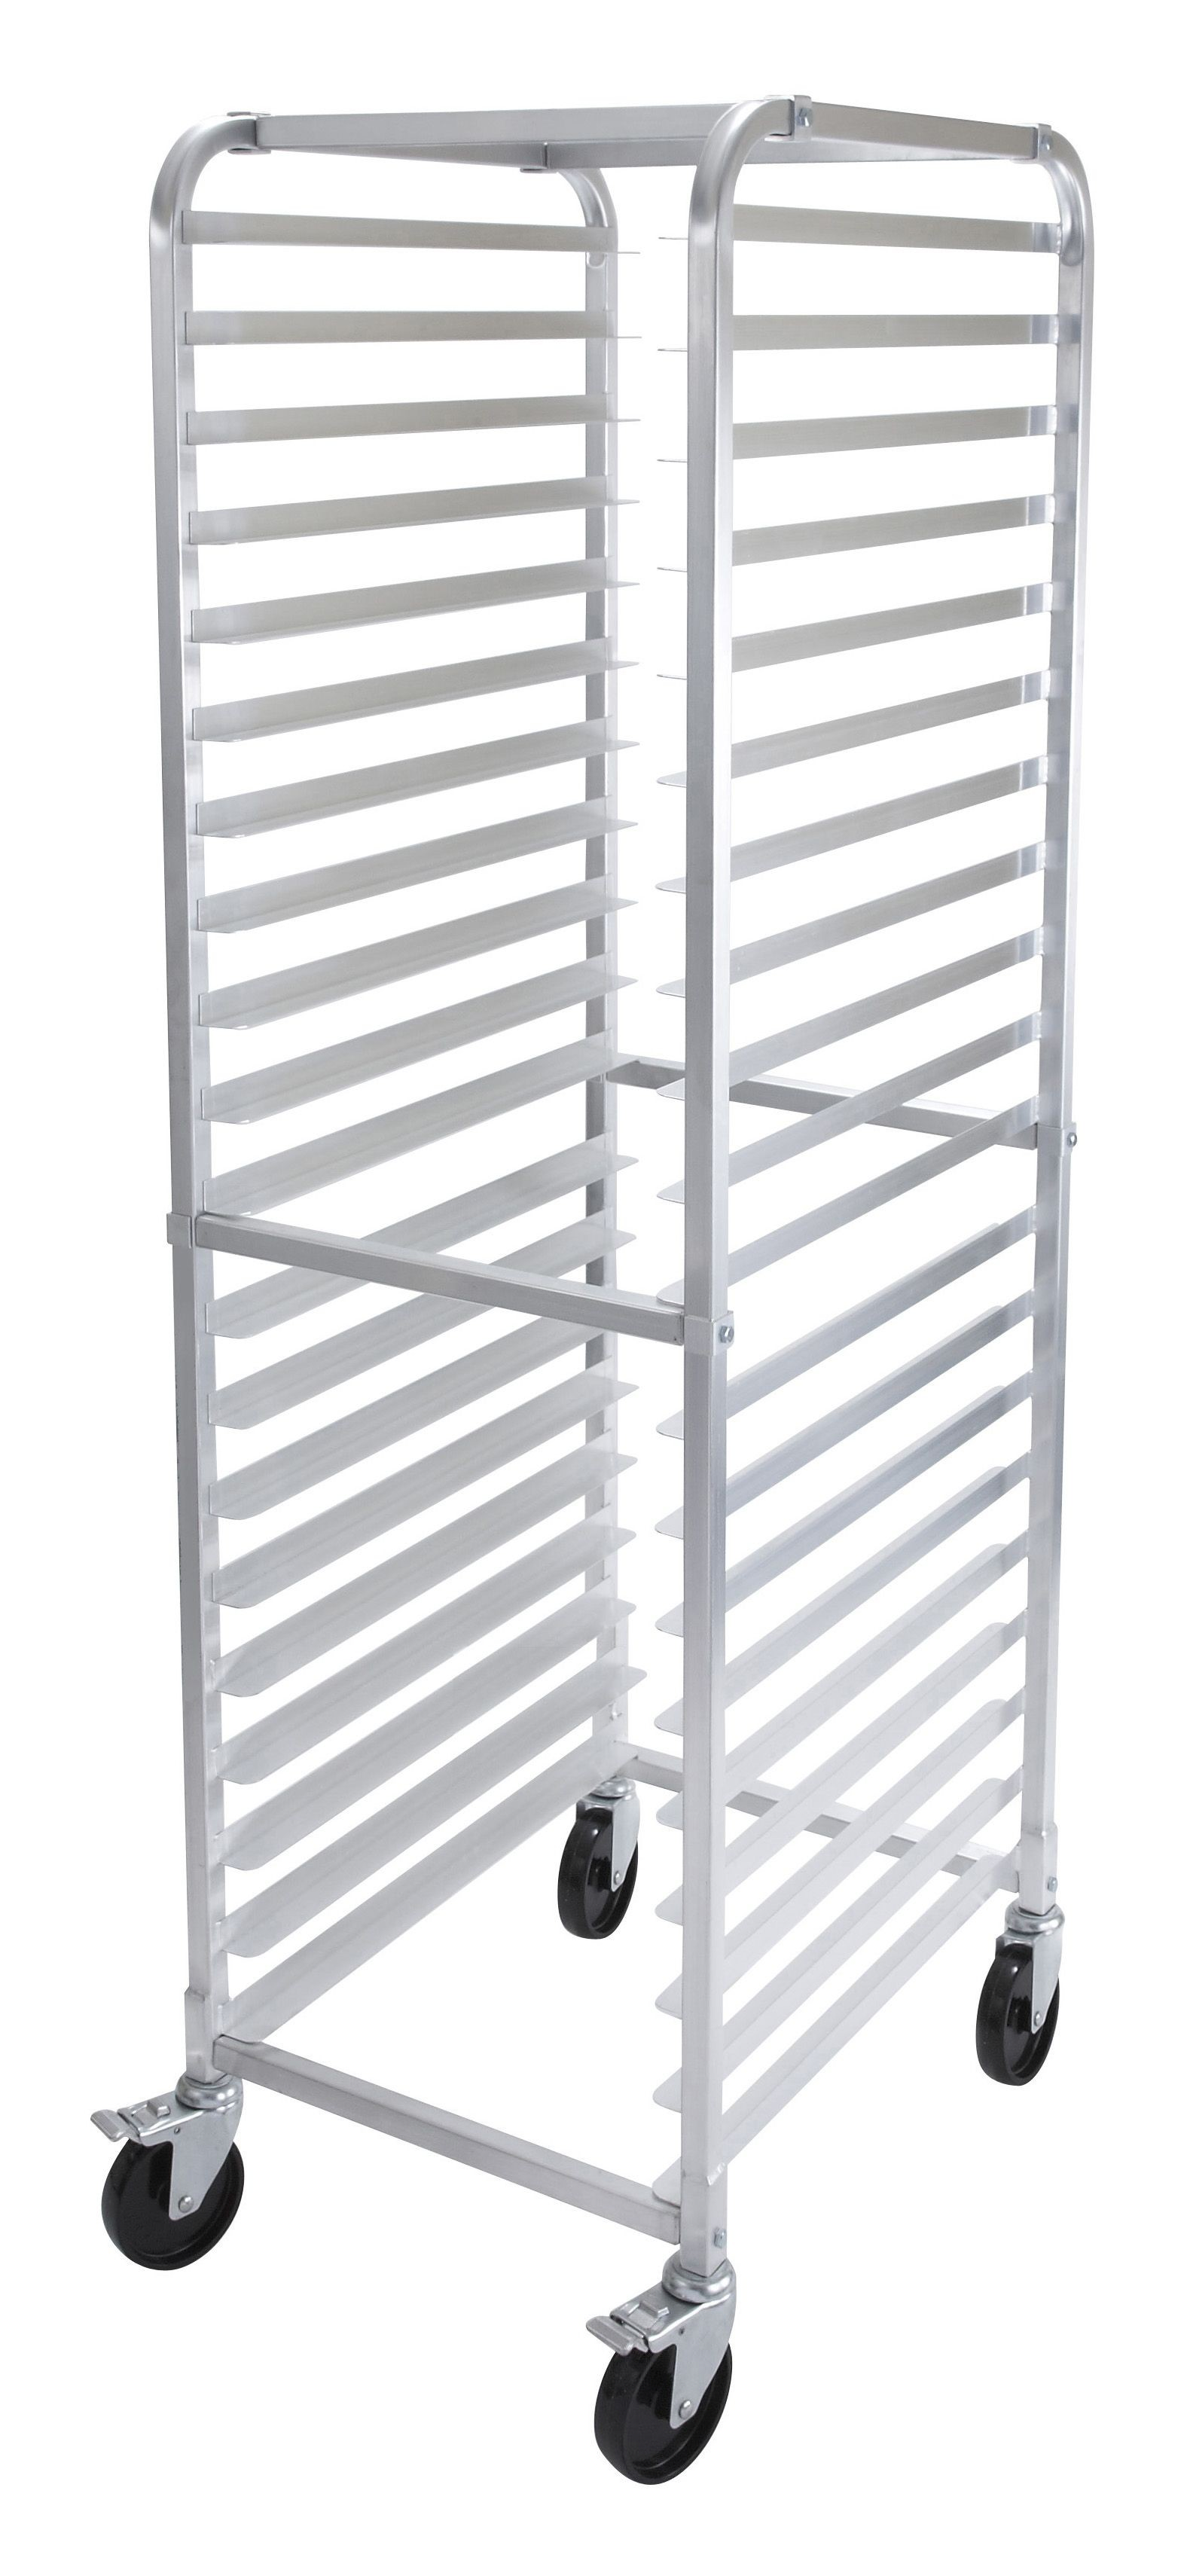 Winco ALRK-20BK 20-Tier Aluminum Sheet Pan Rack with Brake